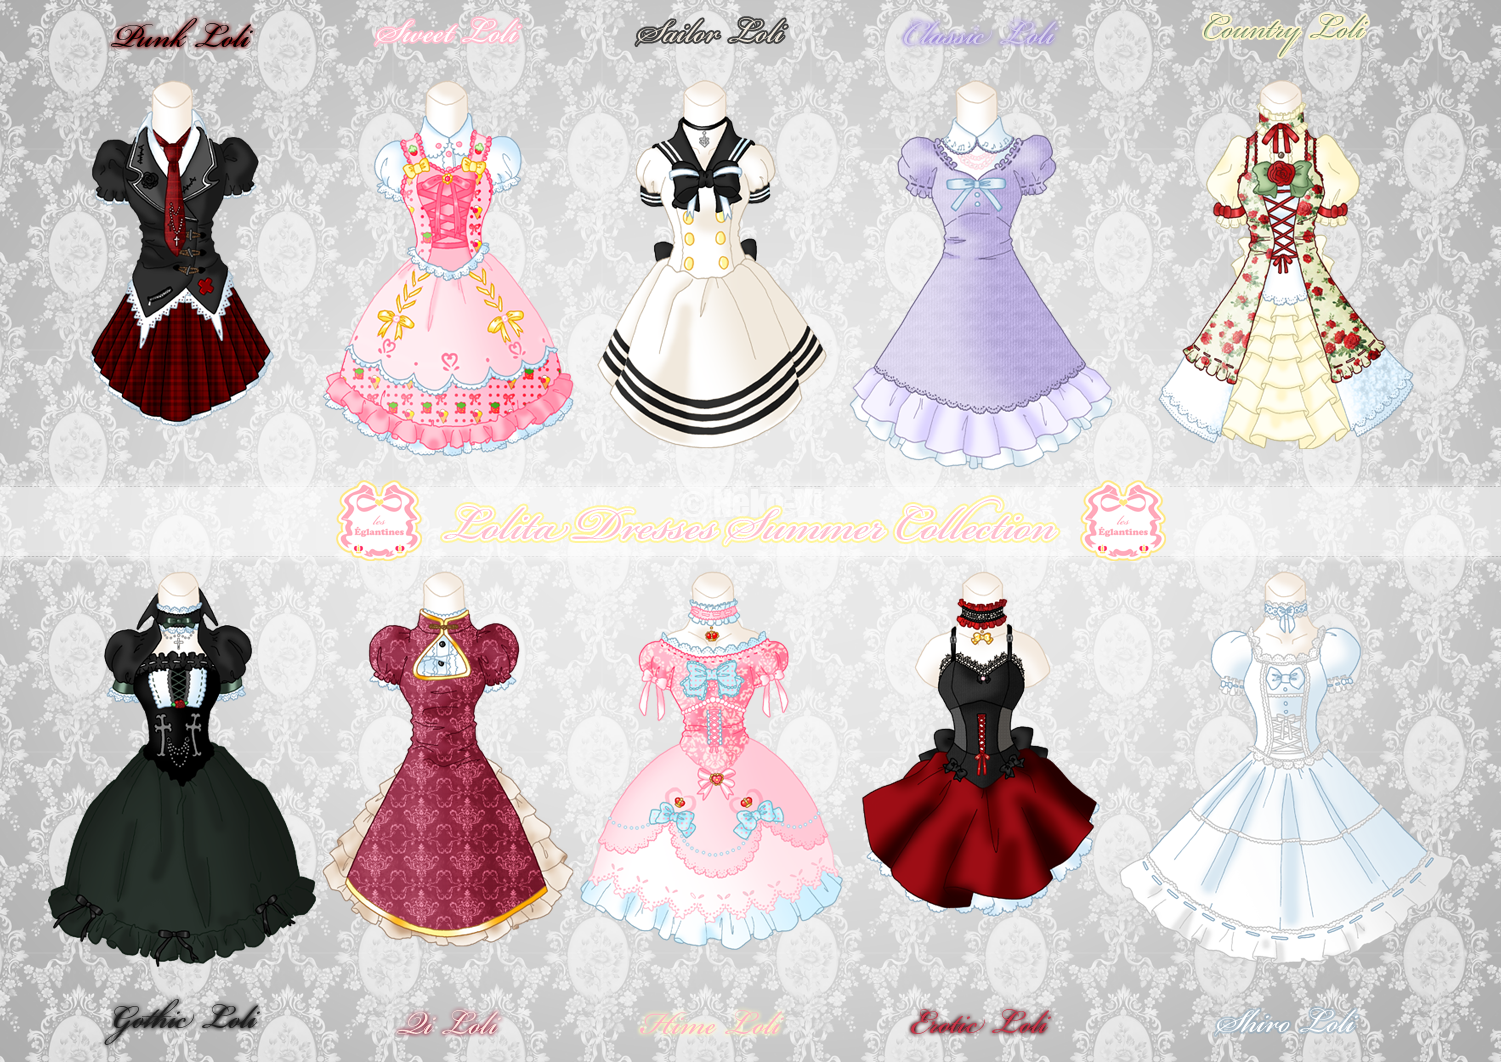 Loli Dresses Summer Collection by Neko-Vi